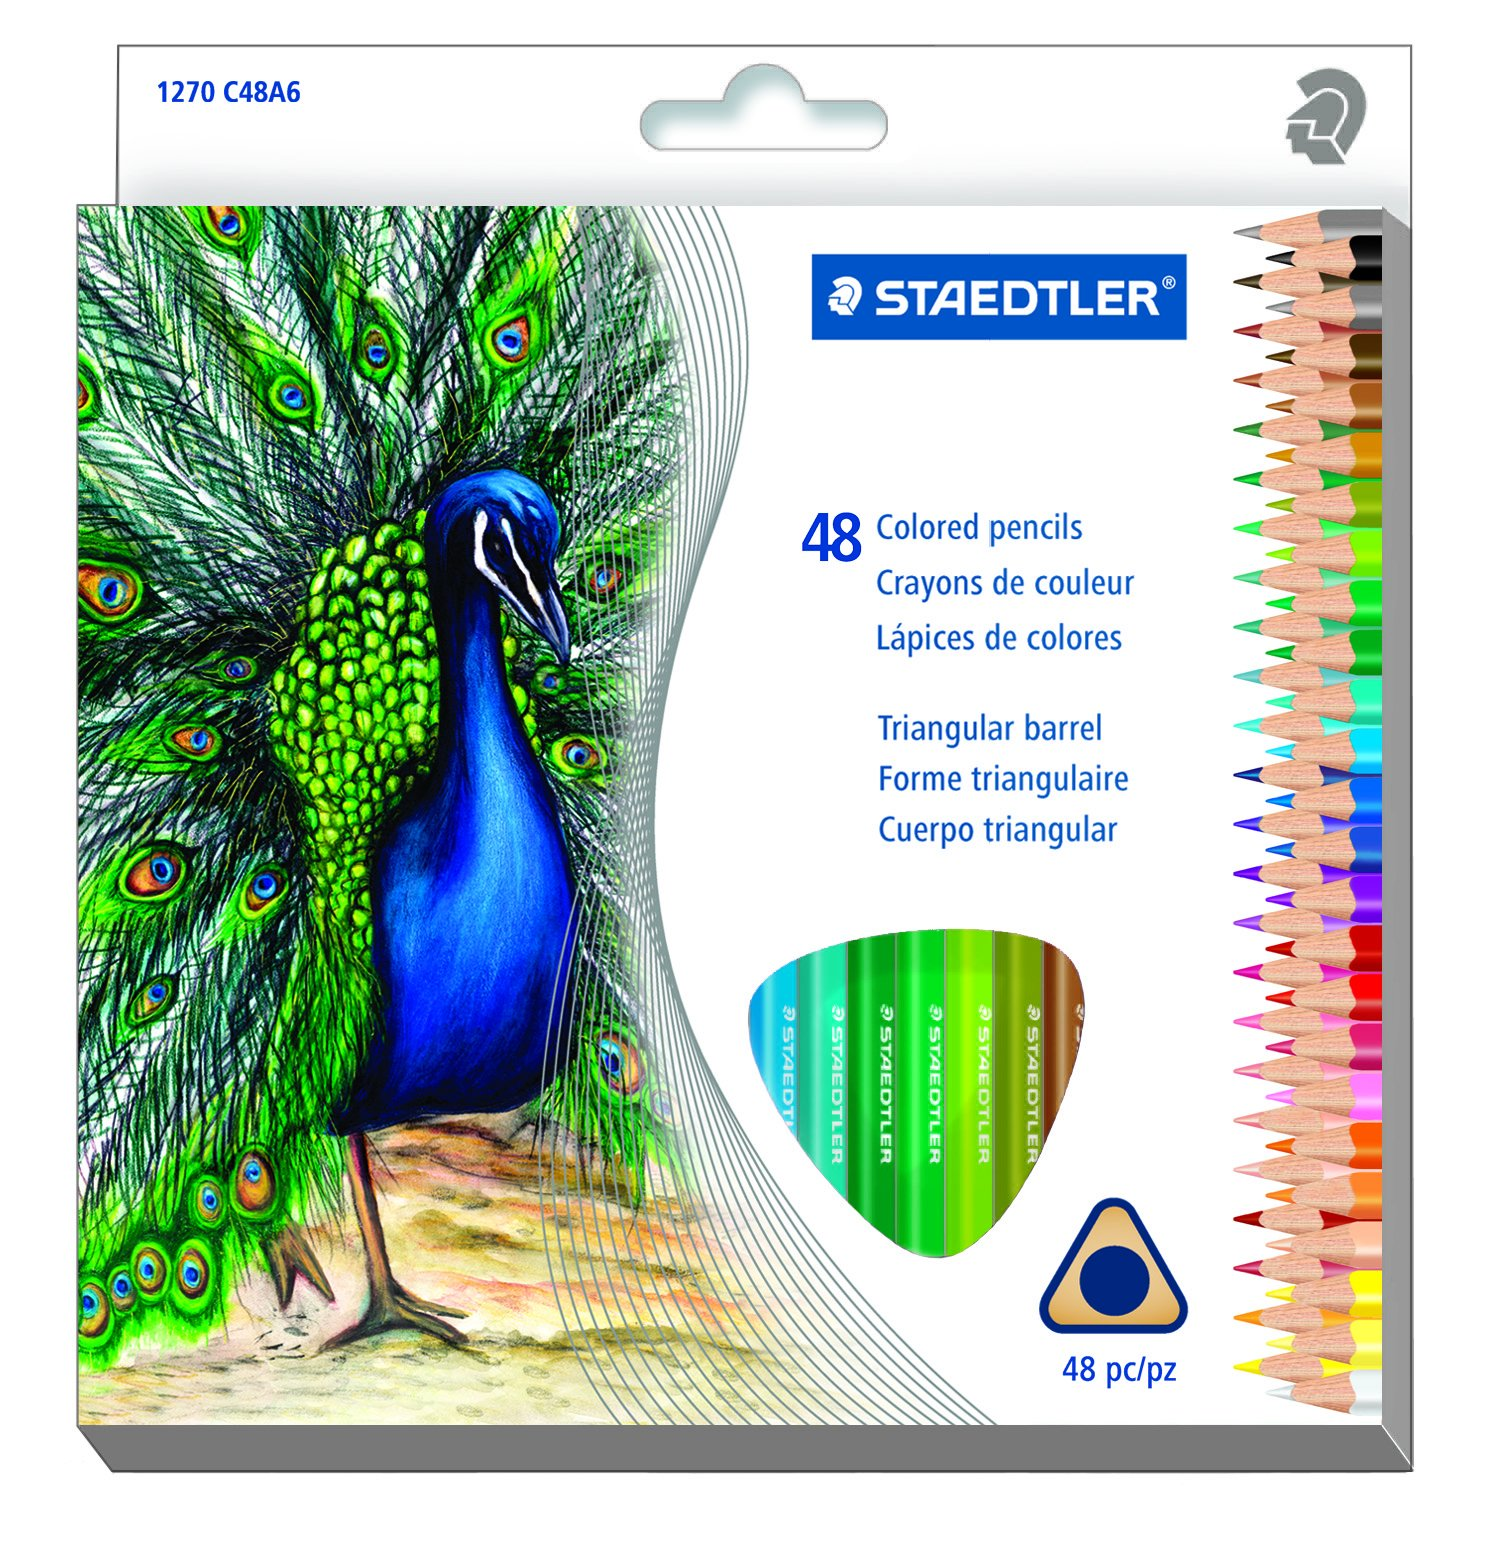 Staedtler 1270 C48A603ID Colored Pencil by STAEDTLER